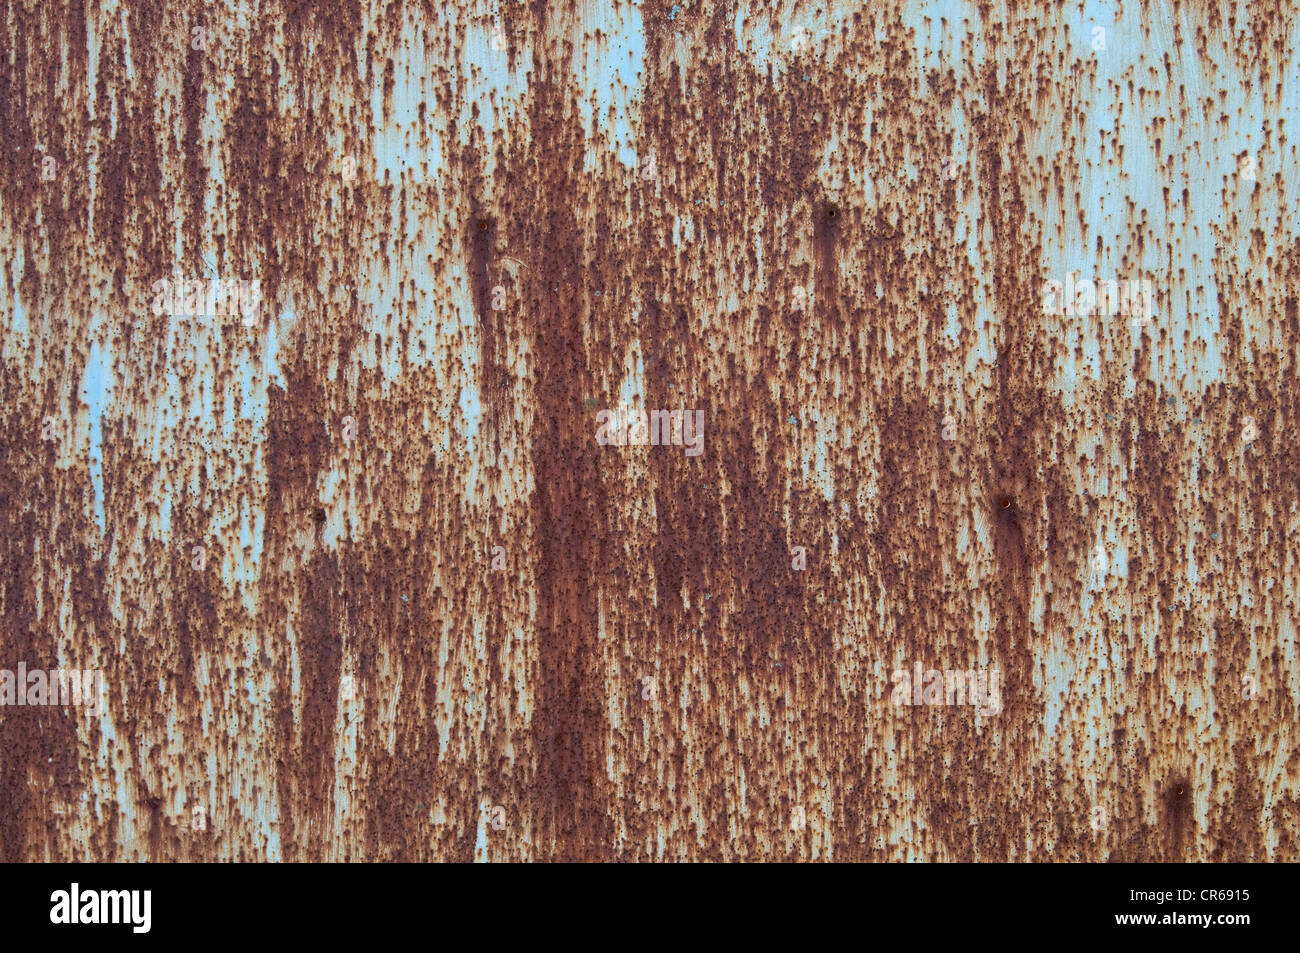 Corroded metal surface, background - Stock Image